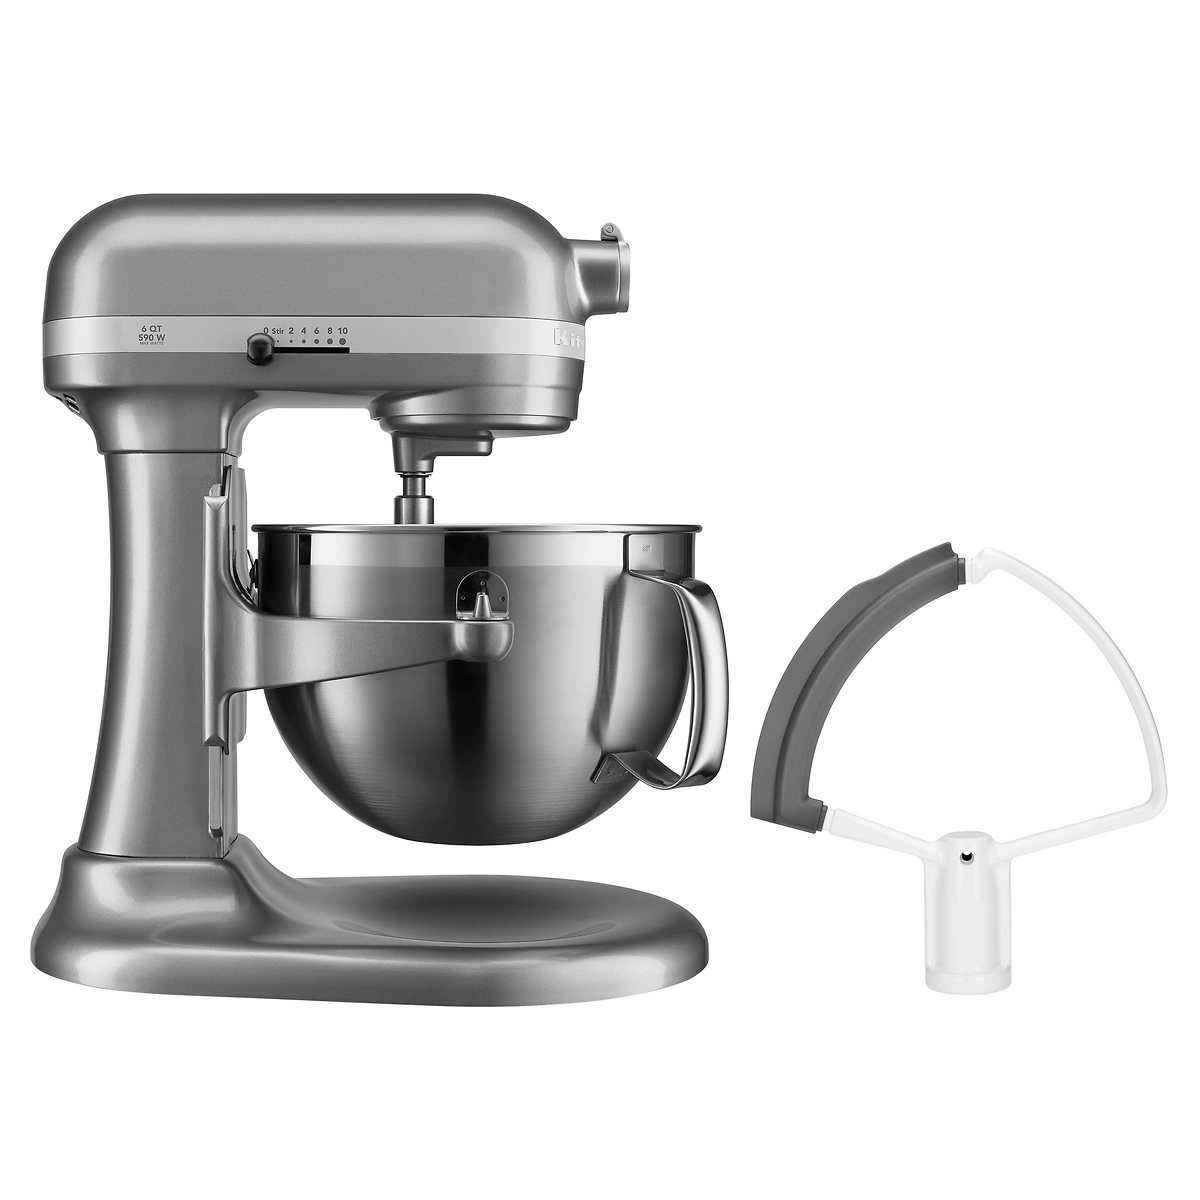 KitchenAid Professional Series 6 Quart Bowl Lift Stand Mixer w/ Flex Edge